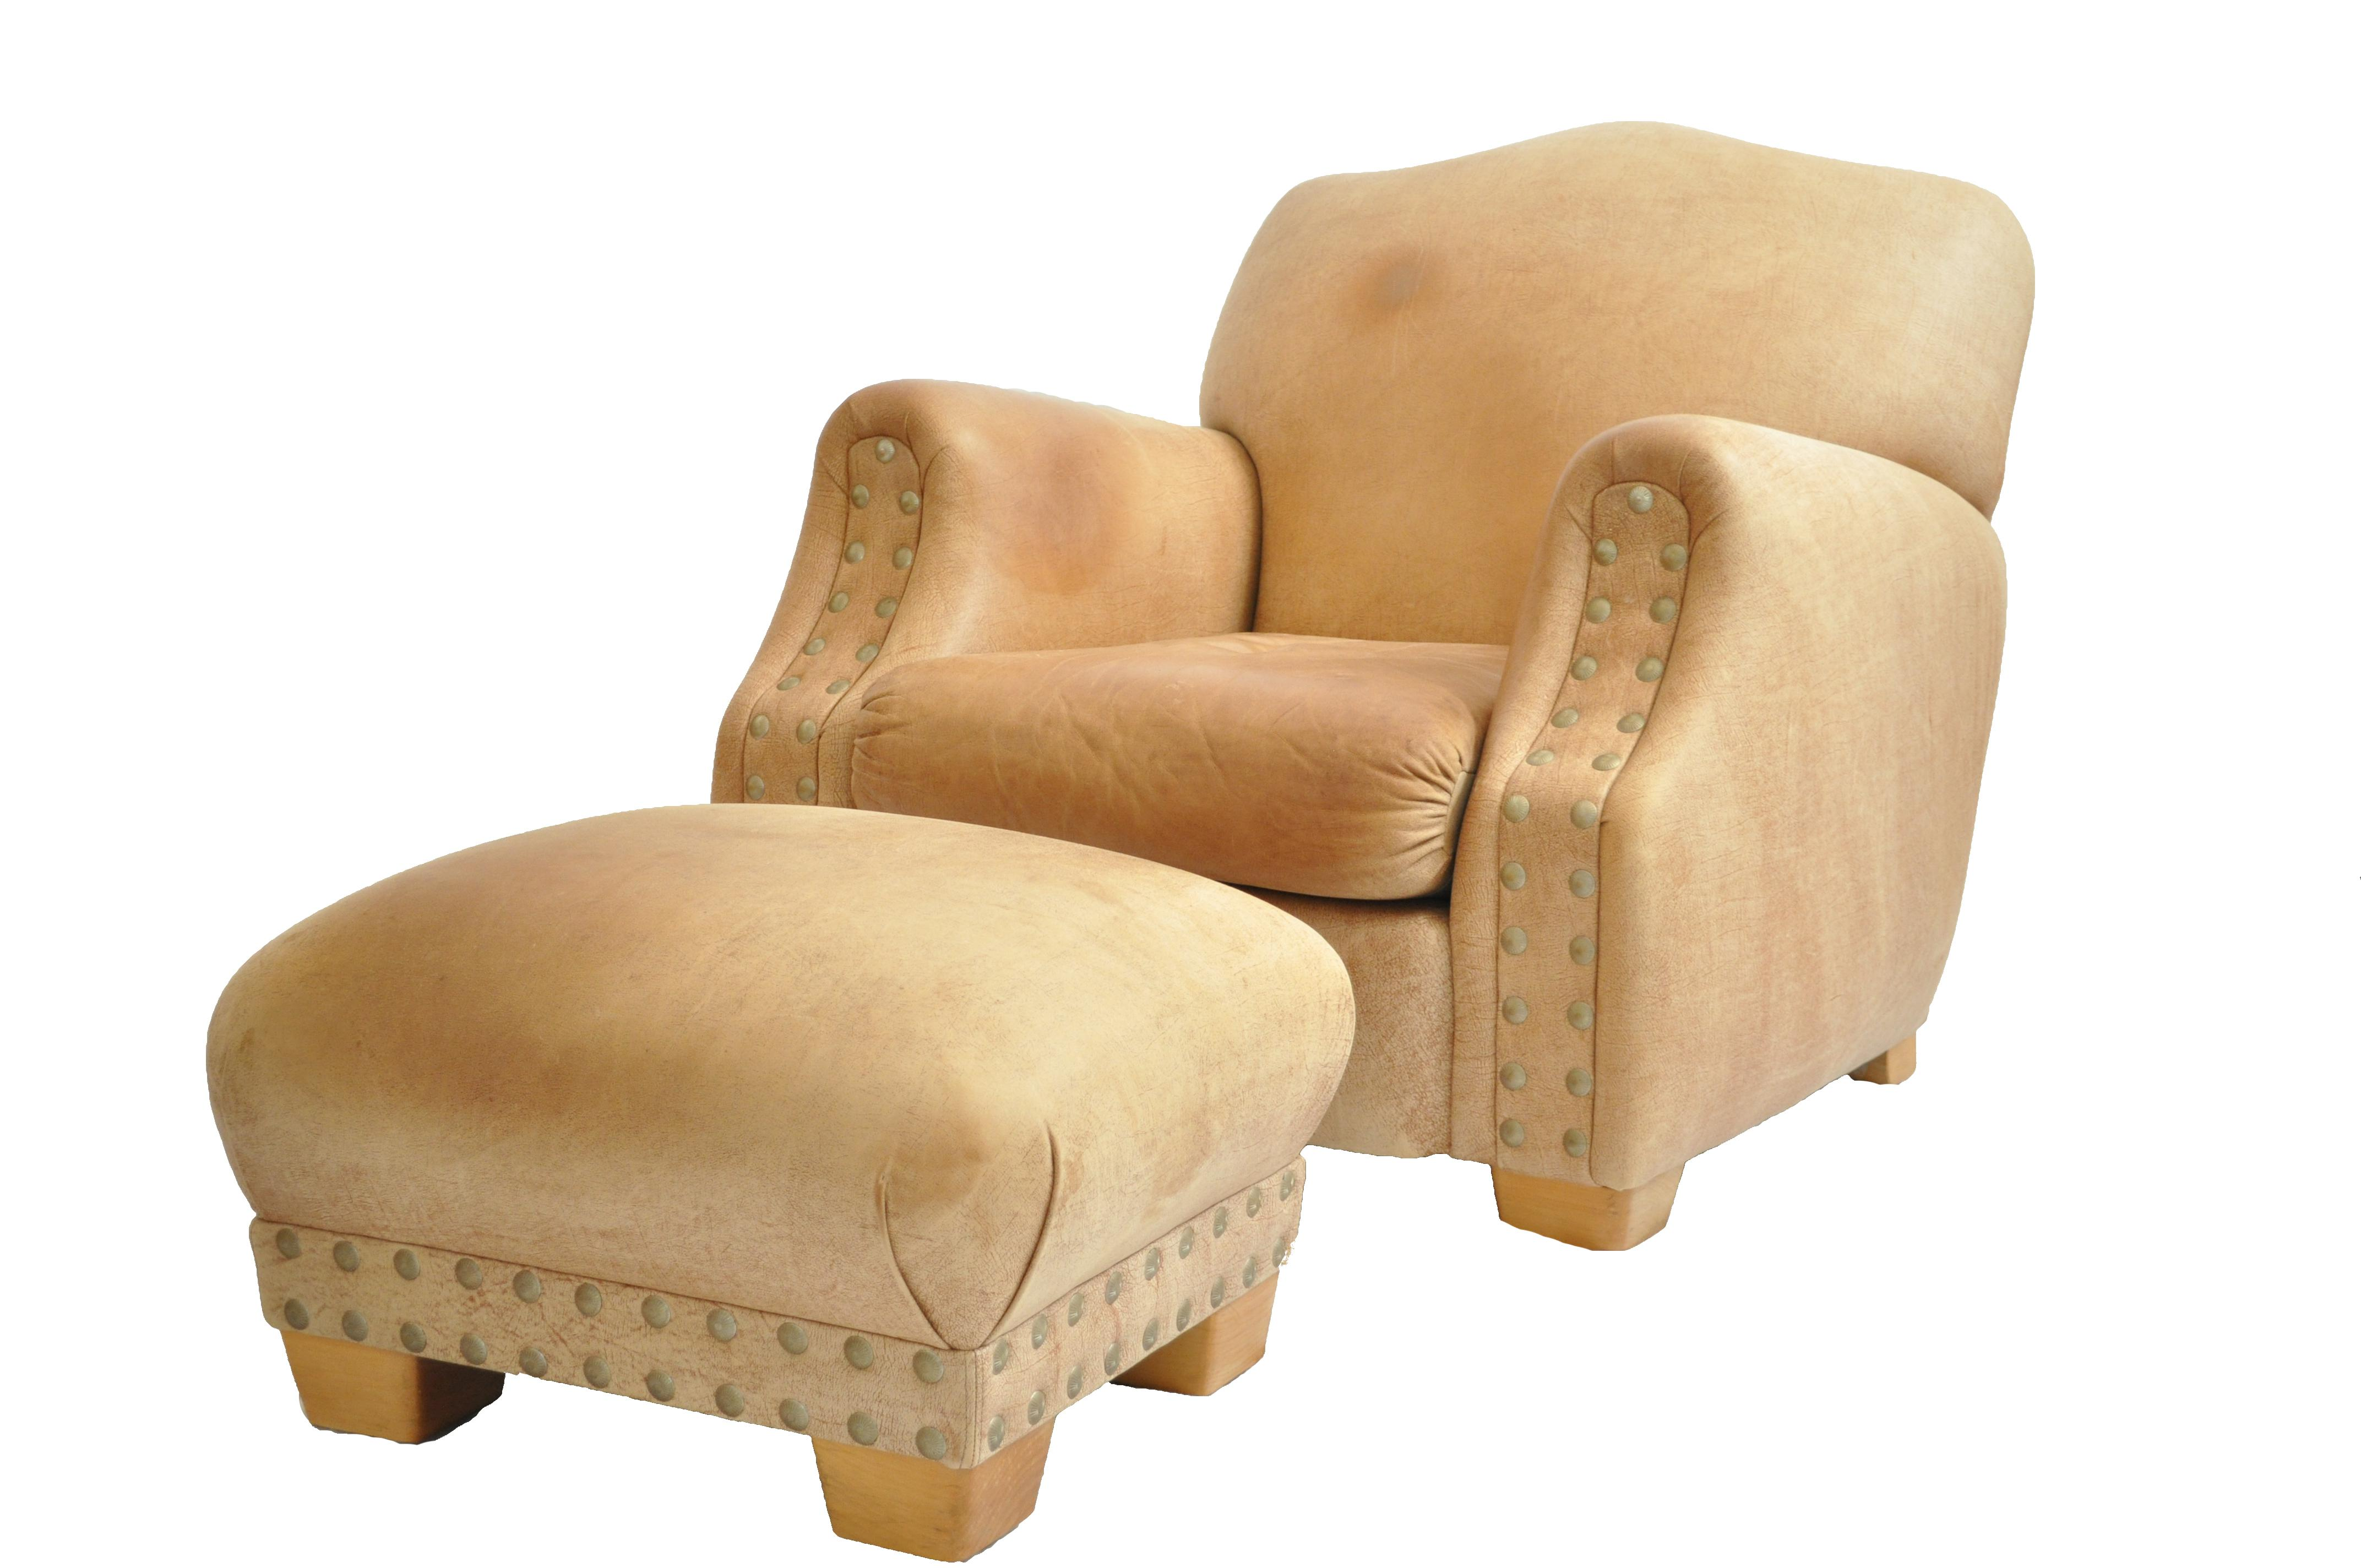 distressed leather chair u0026 ottoman with brass studs